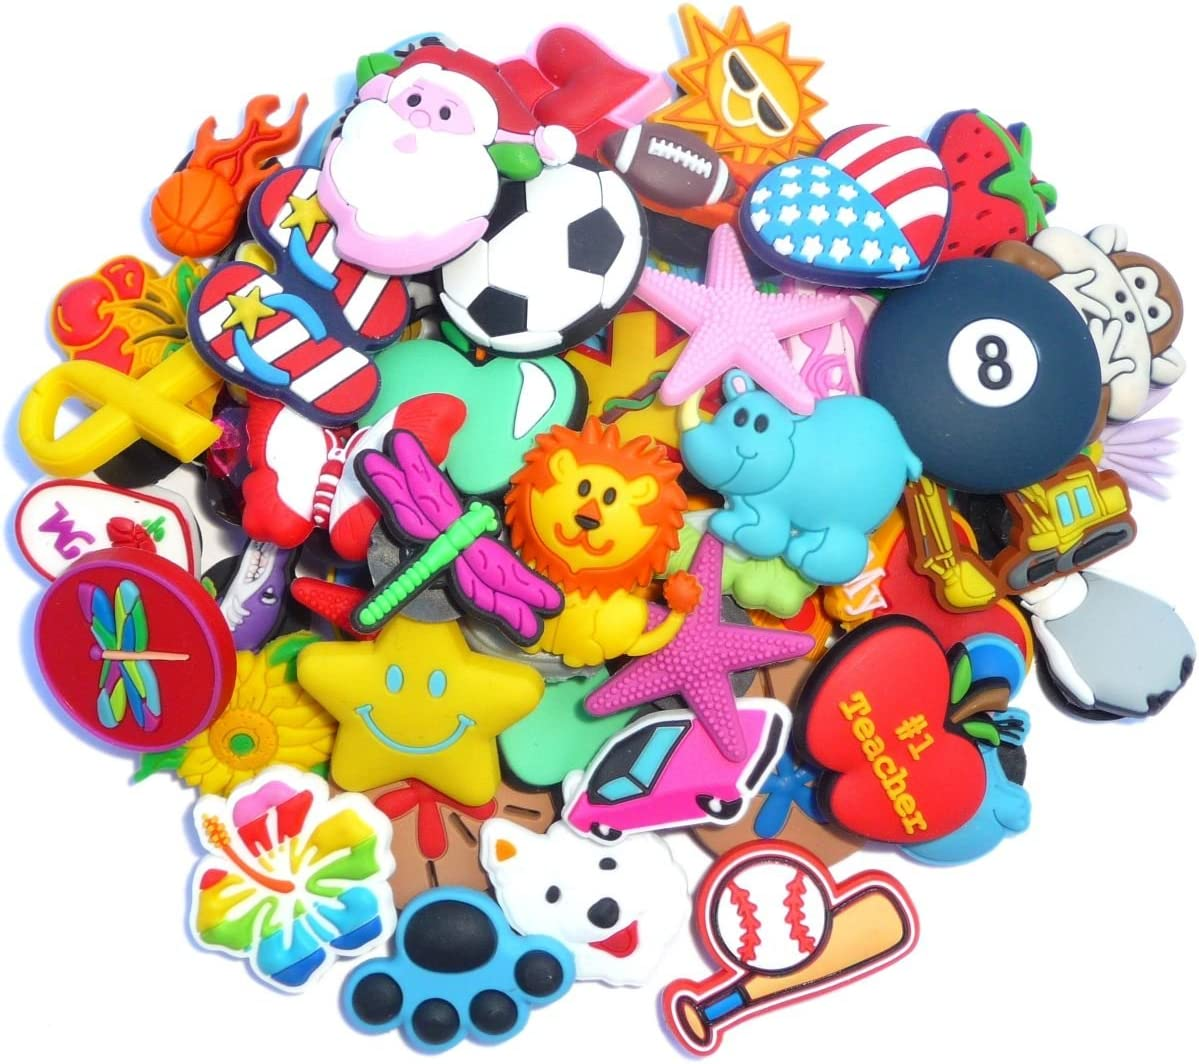 100 Pcs PVC Shoe Charms Fit Crocs & Bands Bracelet and Gifts 71rjJtZHB5L